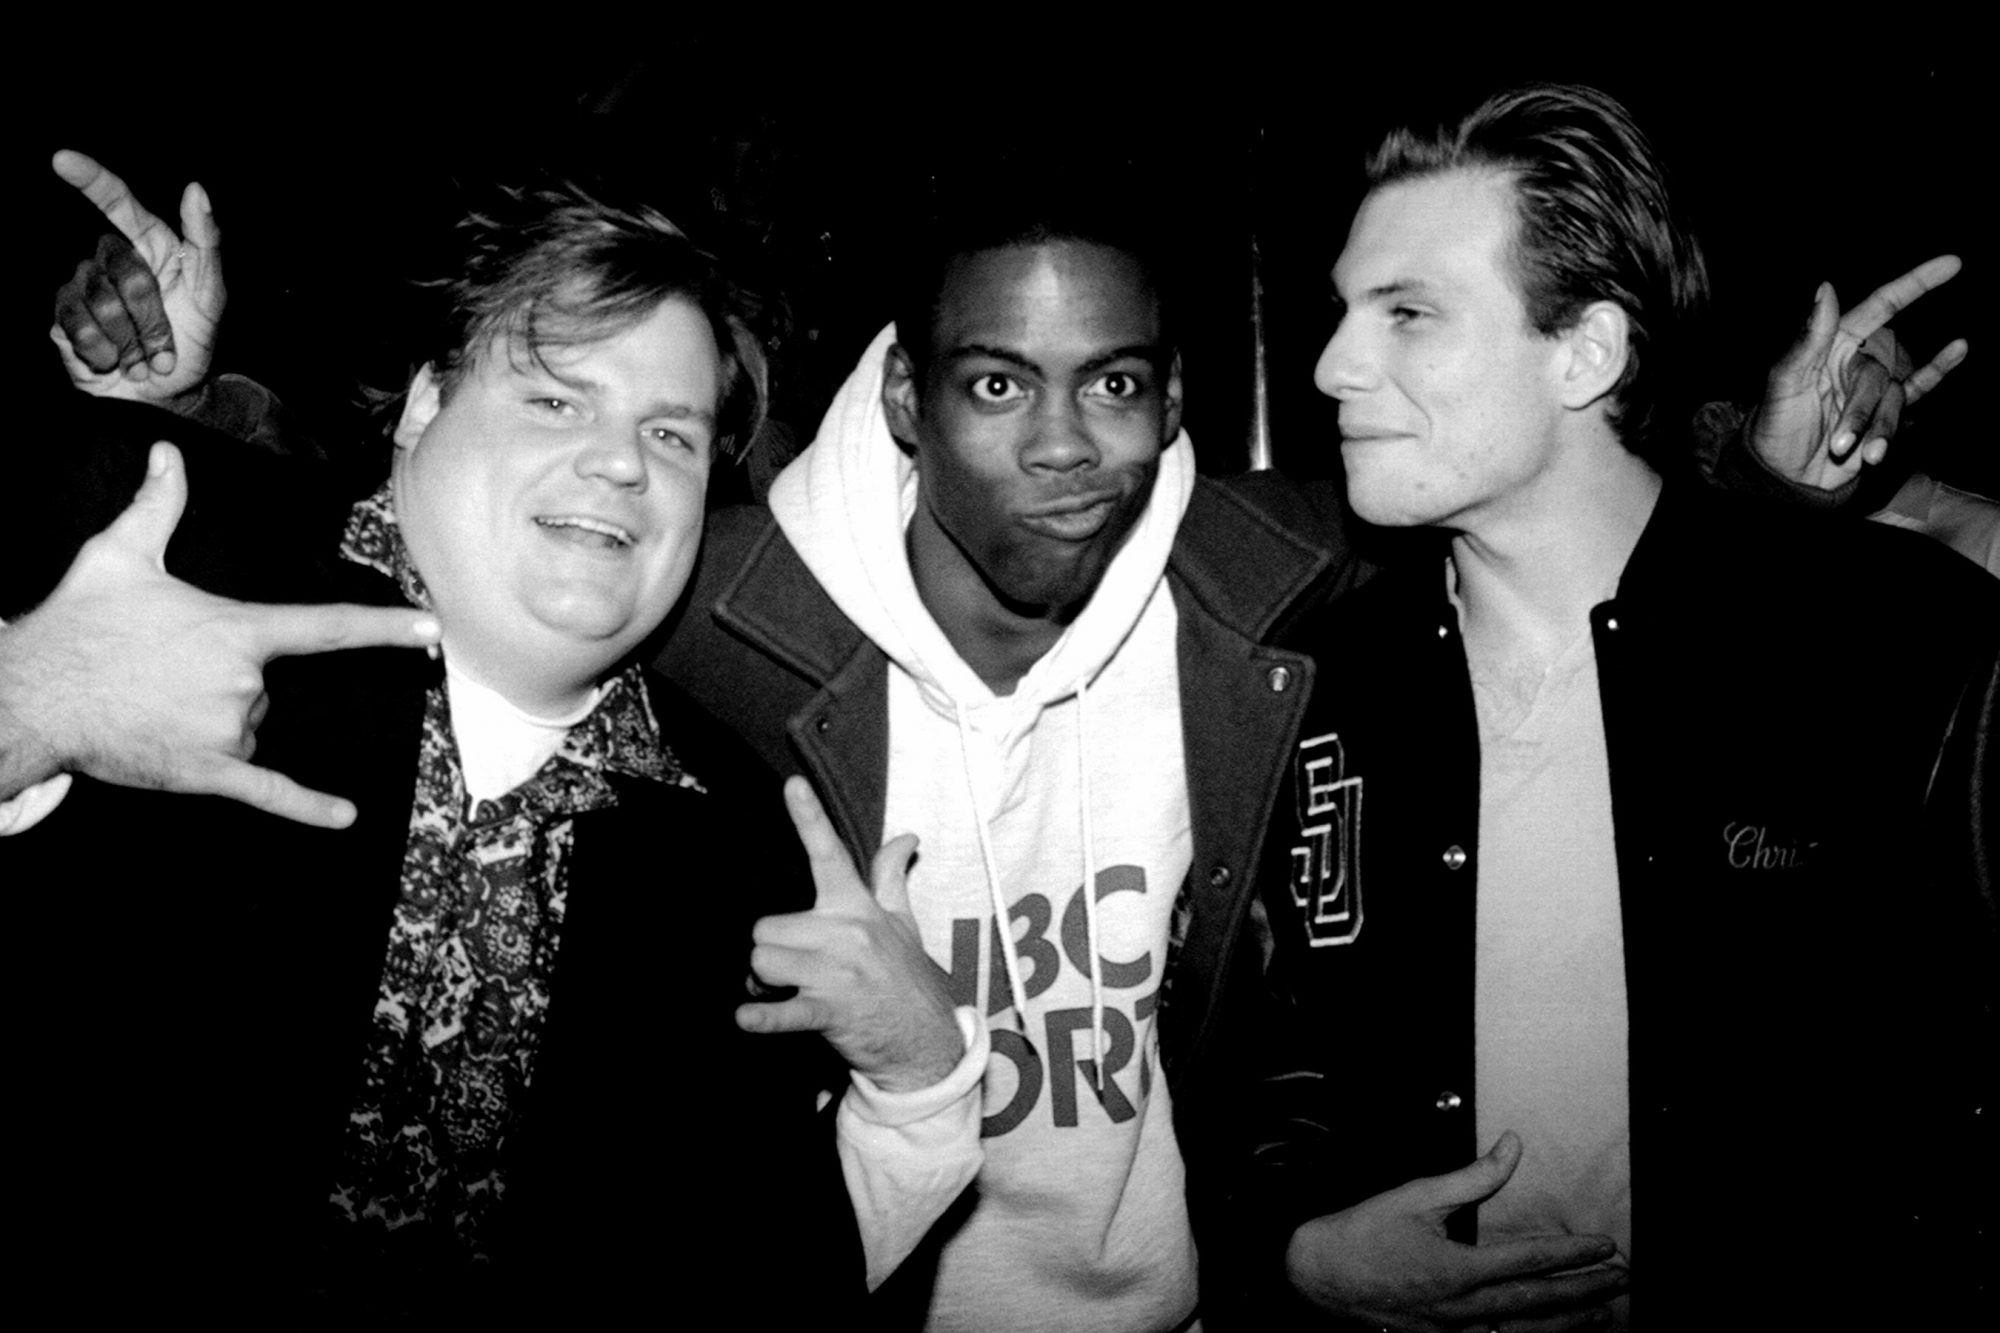 Christian Slater (r.) with Saturday Night Live cast members